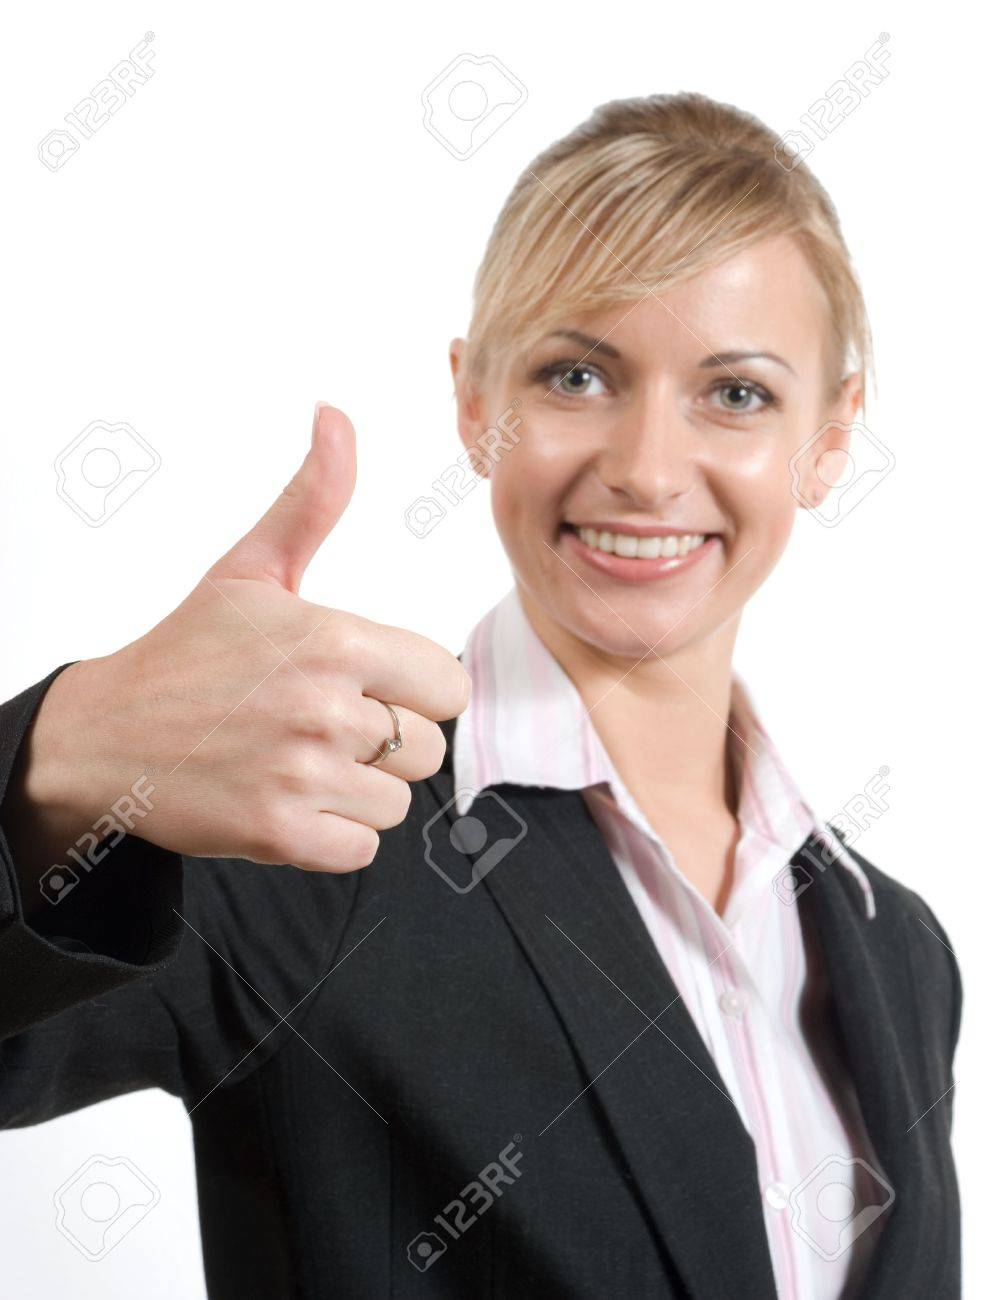 Portrait of women in business suit and white shirt with thumb up (focus on hand) on a white background Stock Photo - 2896991